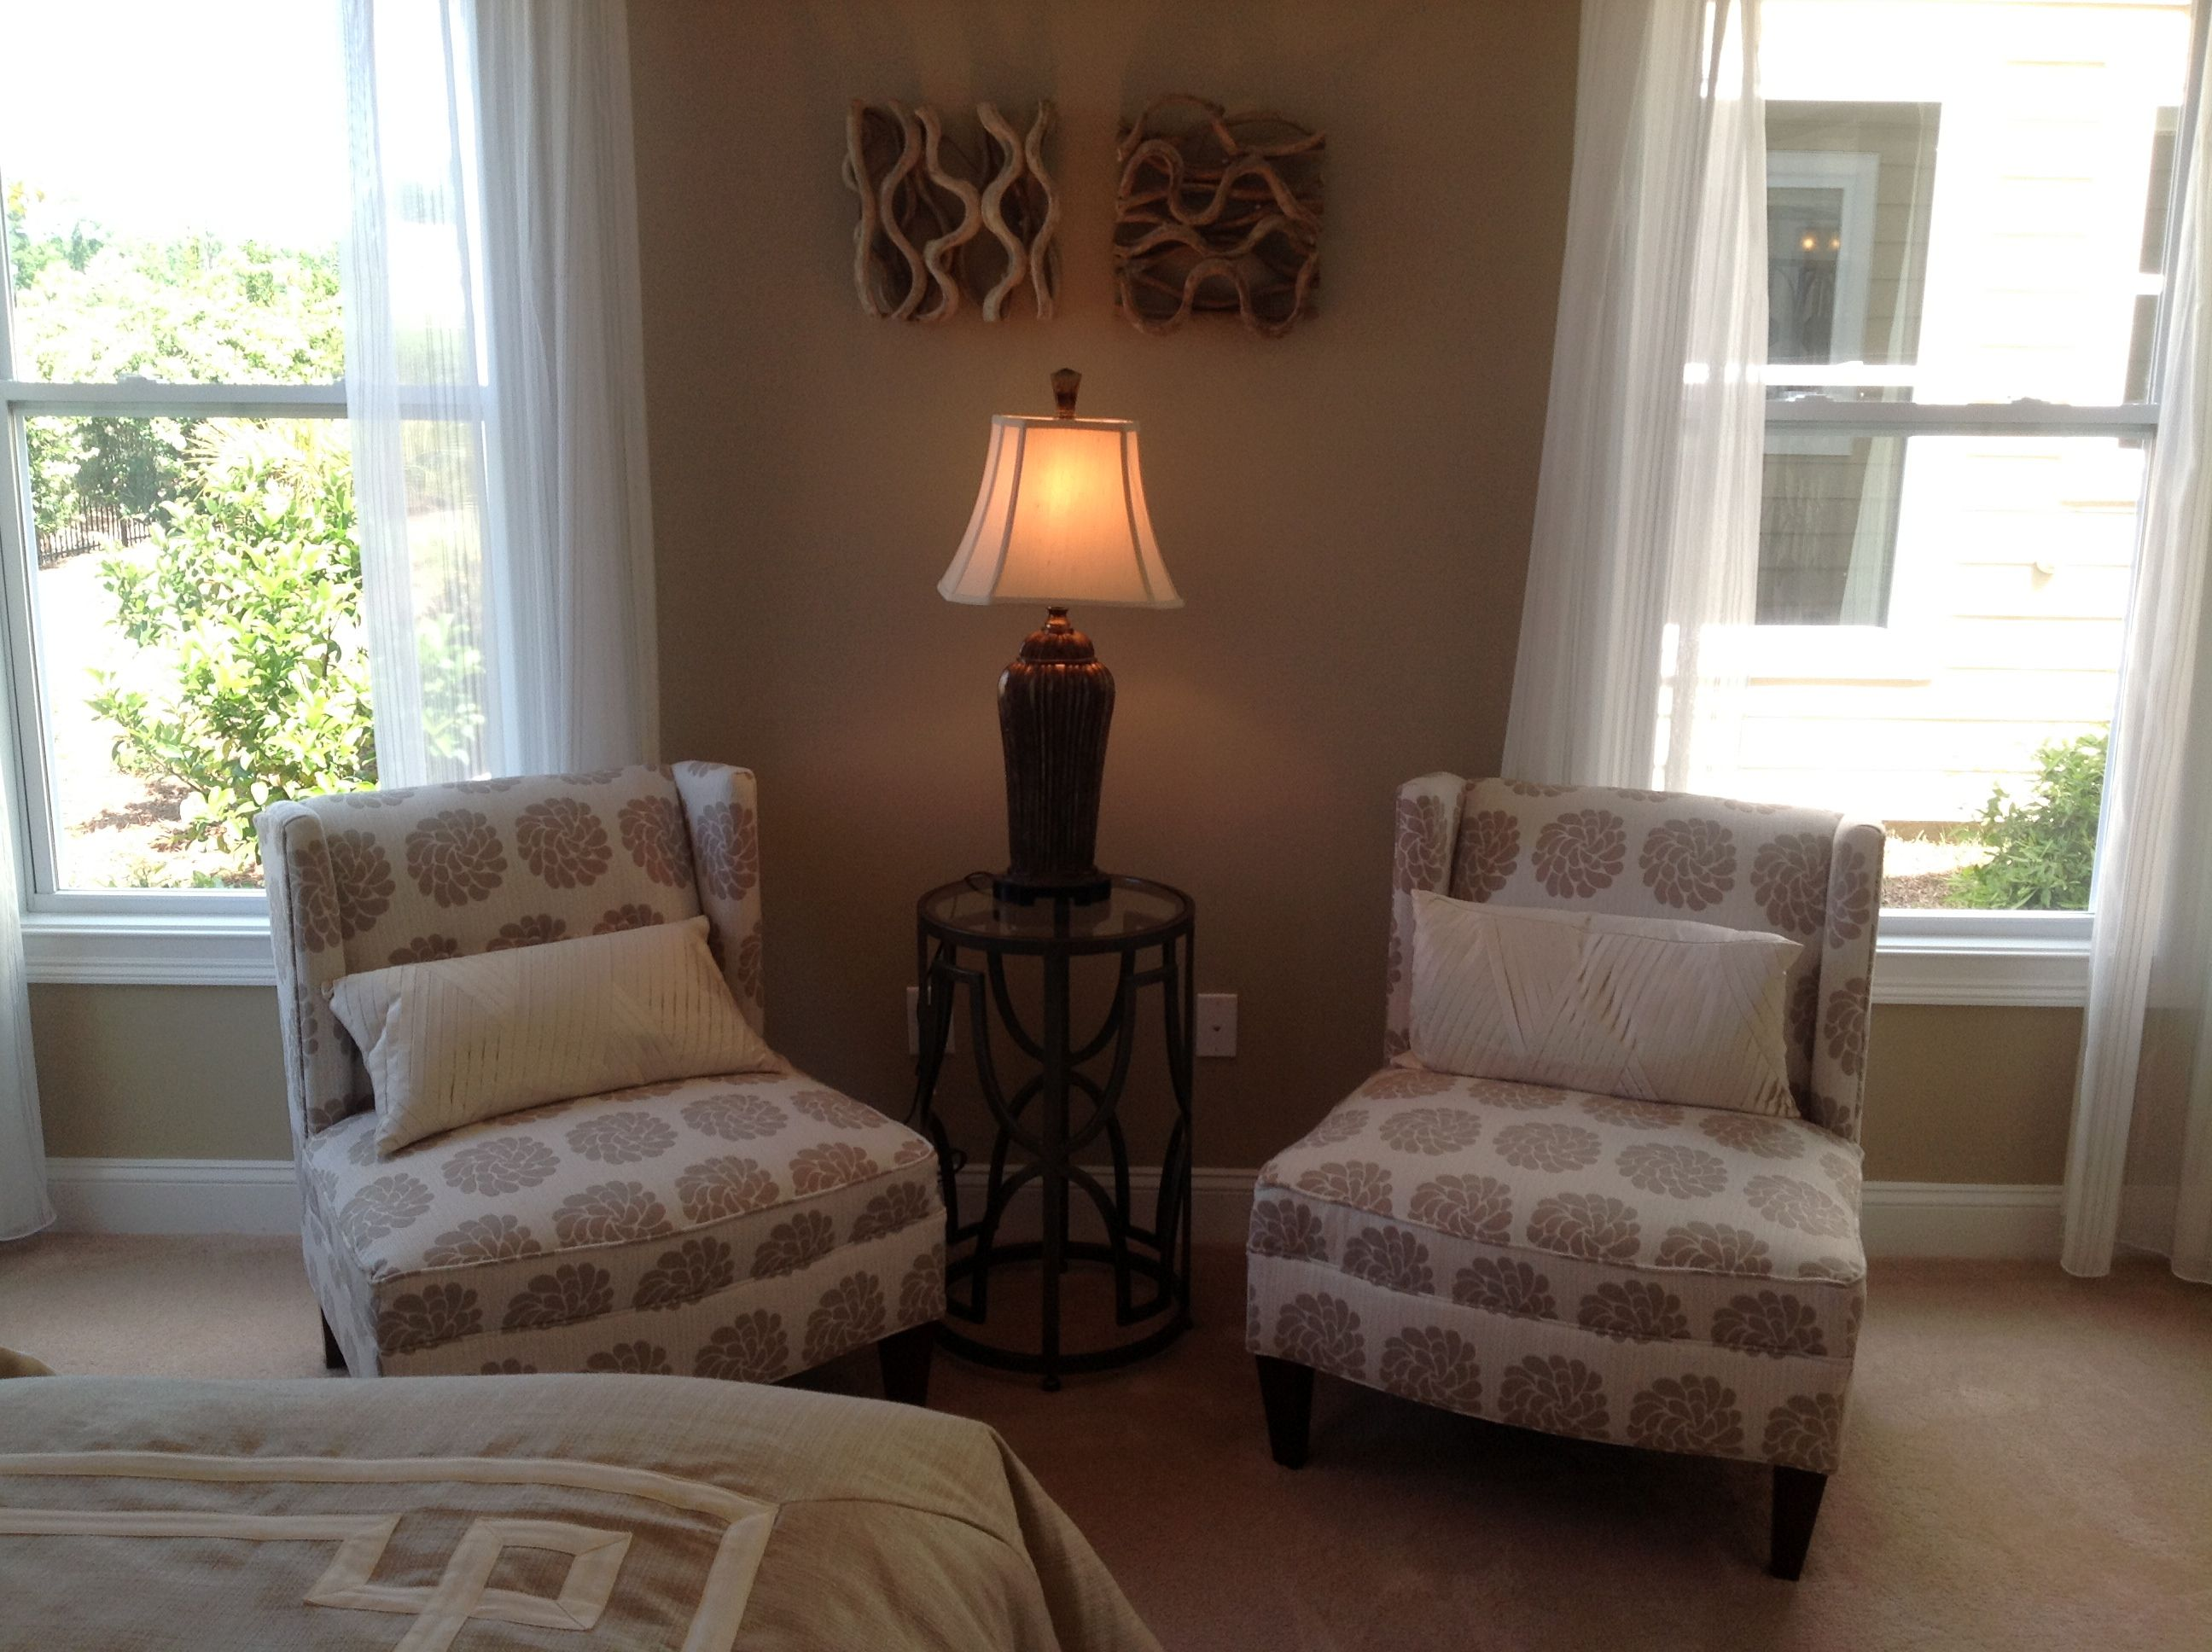 Bedroom sitting area | For the Home | Pinterest